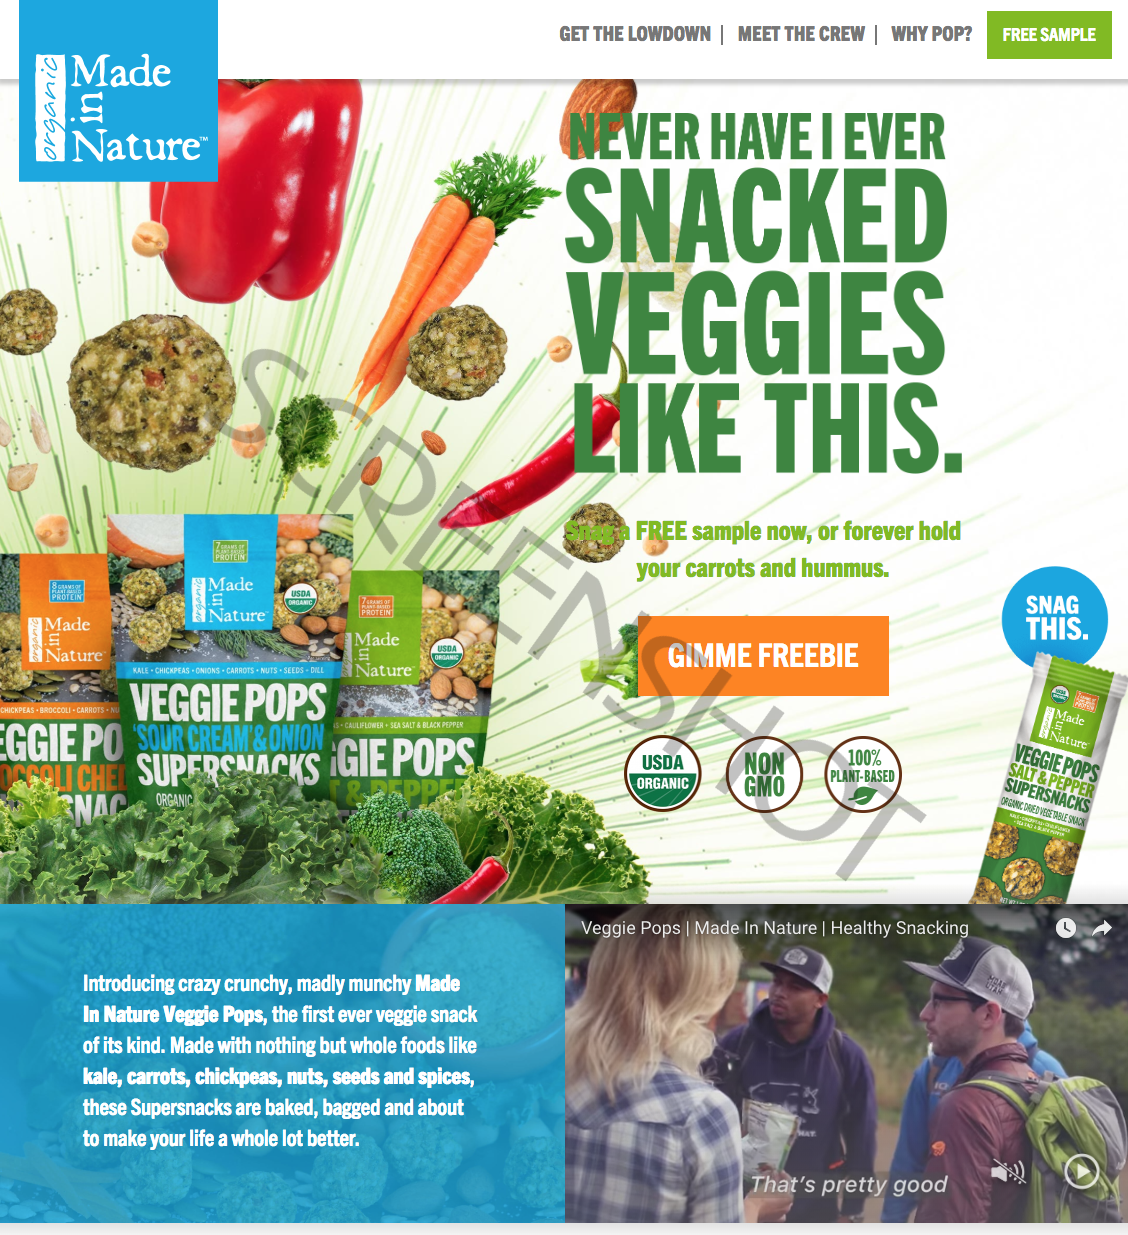 Screenshot of FREE Veggie Pops Sample Offer